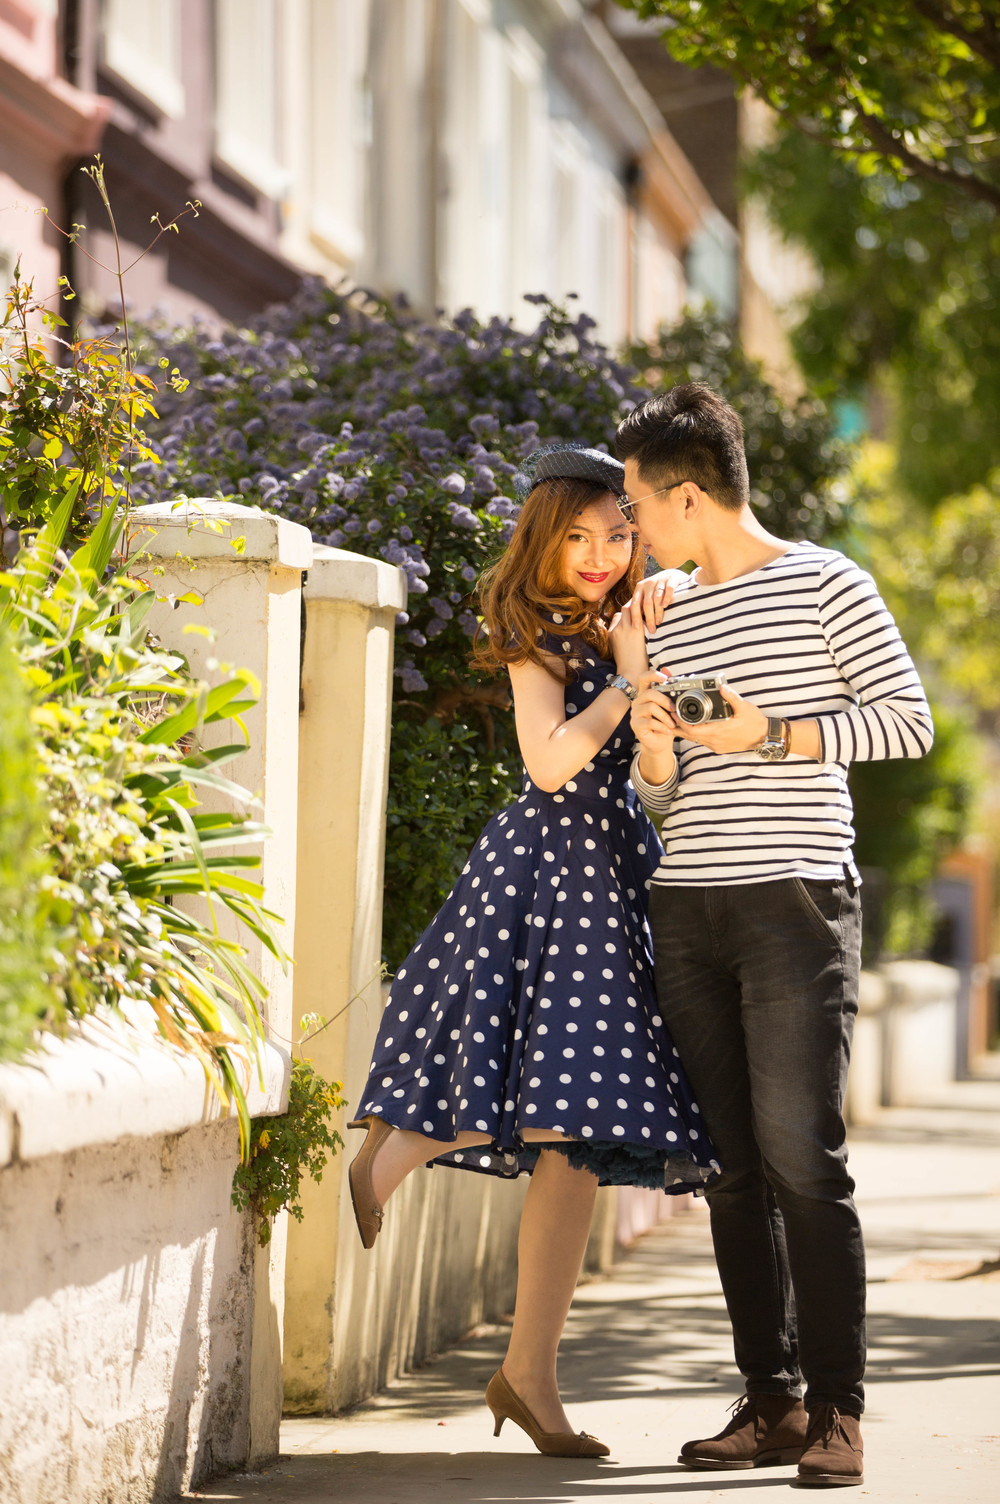 Asian-London-Vintage-Engagement-Wedding-Shoot-Notting-Hill-Regents-Park-4